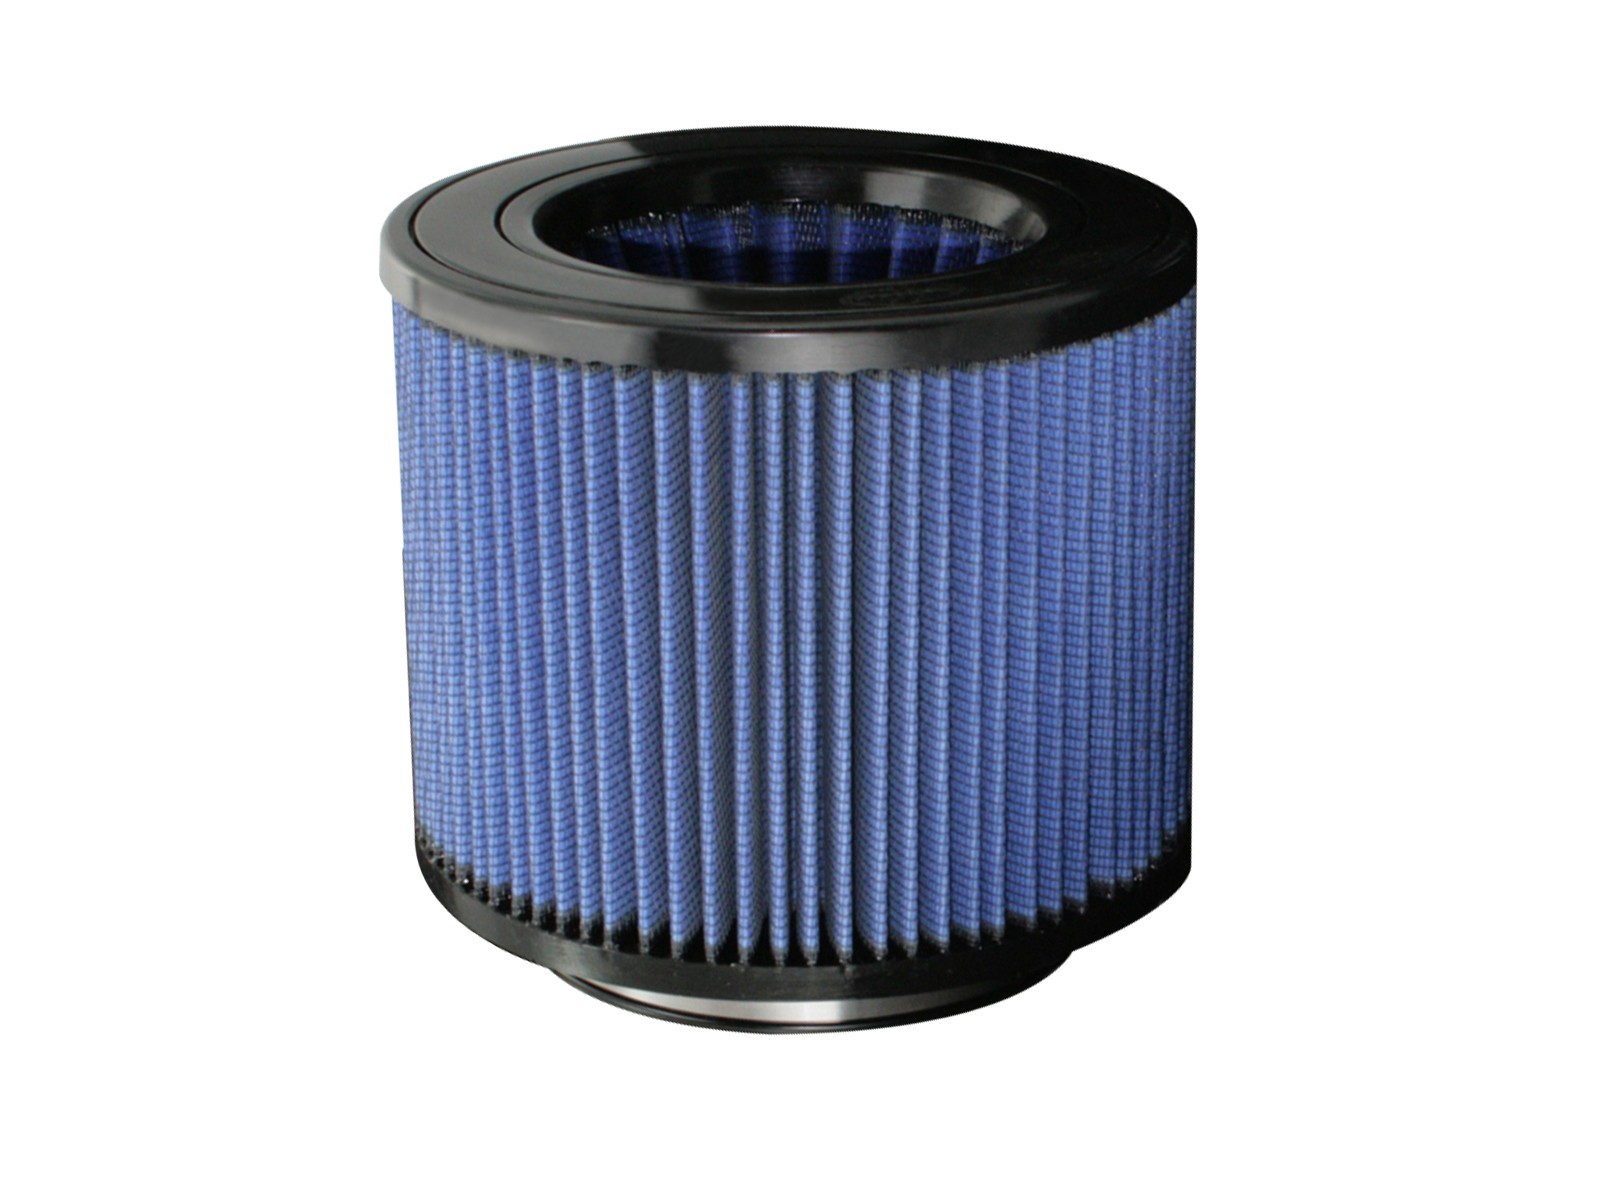 aFe POWER 24-91046 Magnum FLOW Pro 5R Air Filter